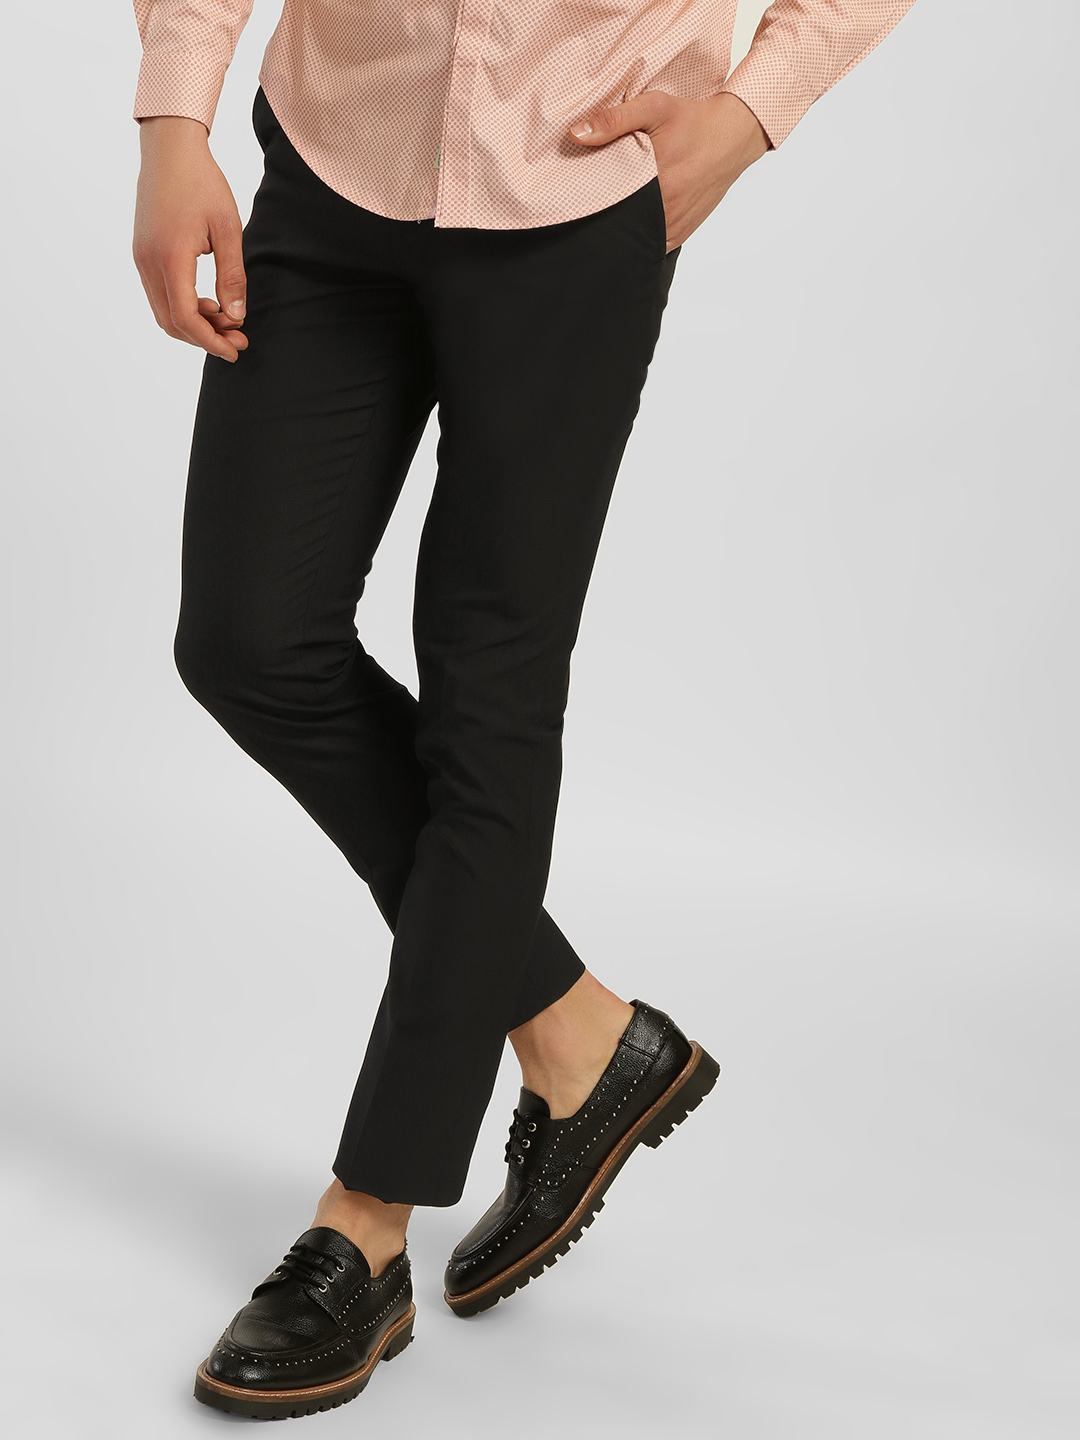 Indigo Nation Black Basic Slim Formal Trousers 1